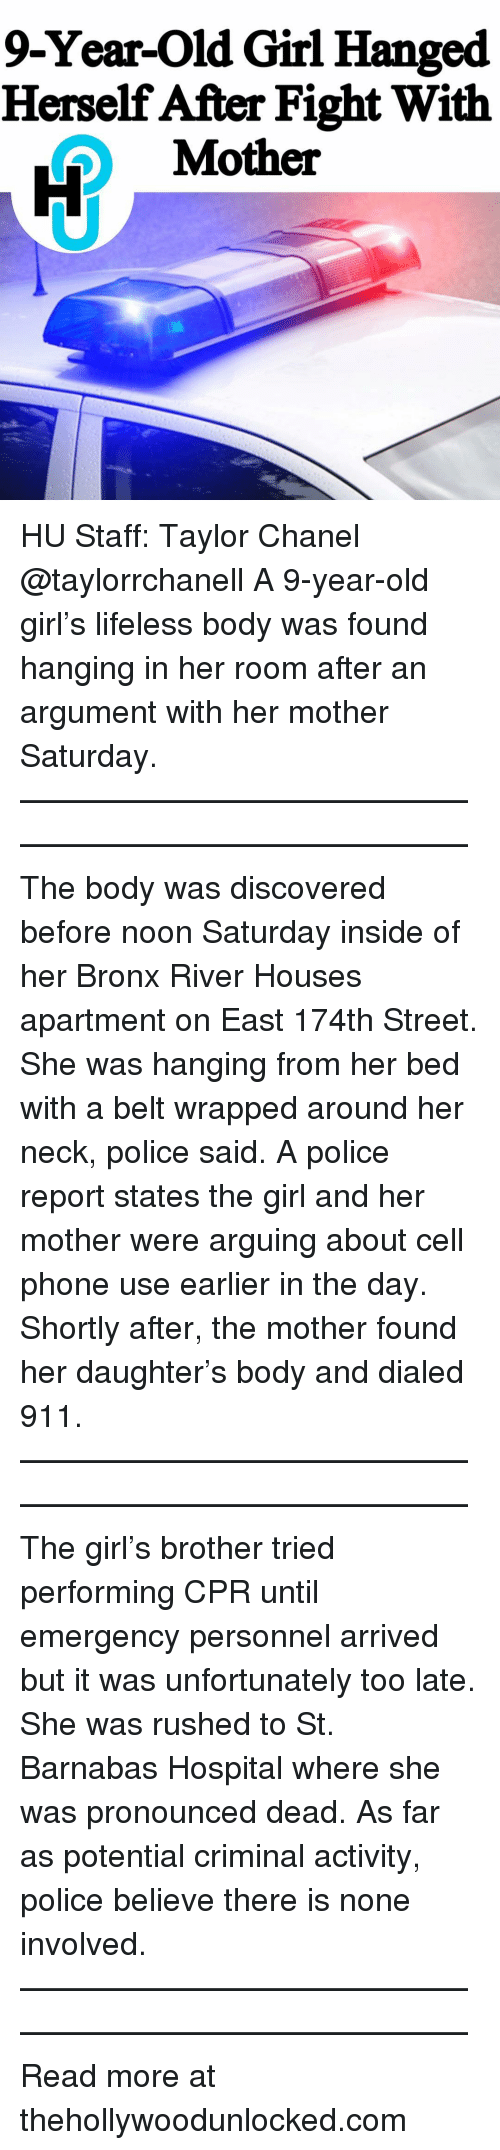 Memes, Phone, and Police: 9-Year-Old Girl Hanged  Herself After Fight With  Mother HU Staff: Taylor Chanel @taylorrchanell A 9-year-old girl's lifeless body was found hanging in her room after an argument with her mother Saturday. ———————————————————————————— The body was discovered before noon Saturday inside of her Bronx River Houses apartment on East 174th Street. She was hanging from her bed with a belt wrapped around her neck, police said. A police report states the girl and her mother were arguing about cell phone use earlier in the day. Shortly after, the mother found her daughter's body and dialed 911. ———————————————————————————— The girl's brother tried performing CPR until emergency personnel arrived but it was unfortunately too late. She was rushed to St. Barnabas Hospital where she was pronounced dead. As far as potential criminal activity, police believe there is none involved. ———————————————————————————— Read more at thehollywoodunlocked.com